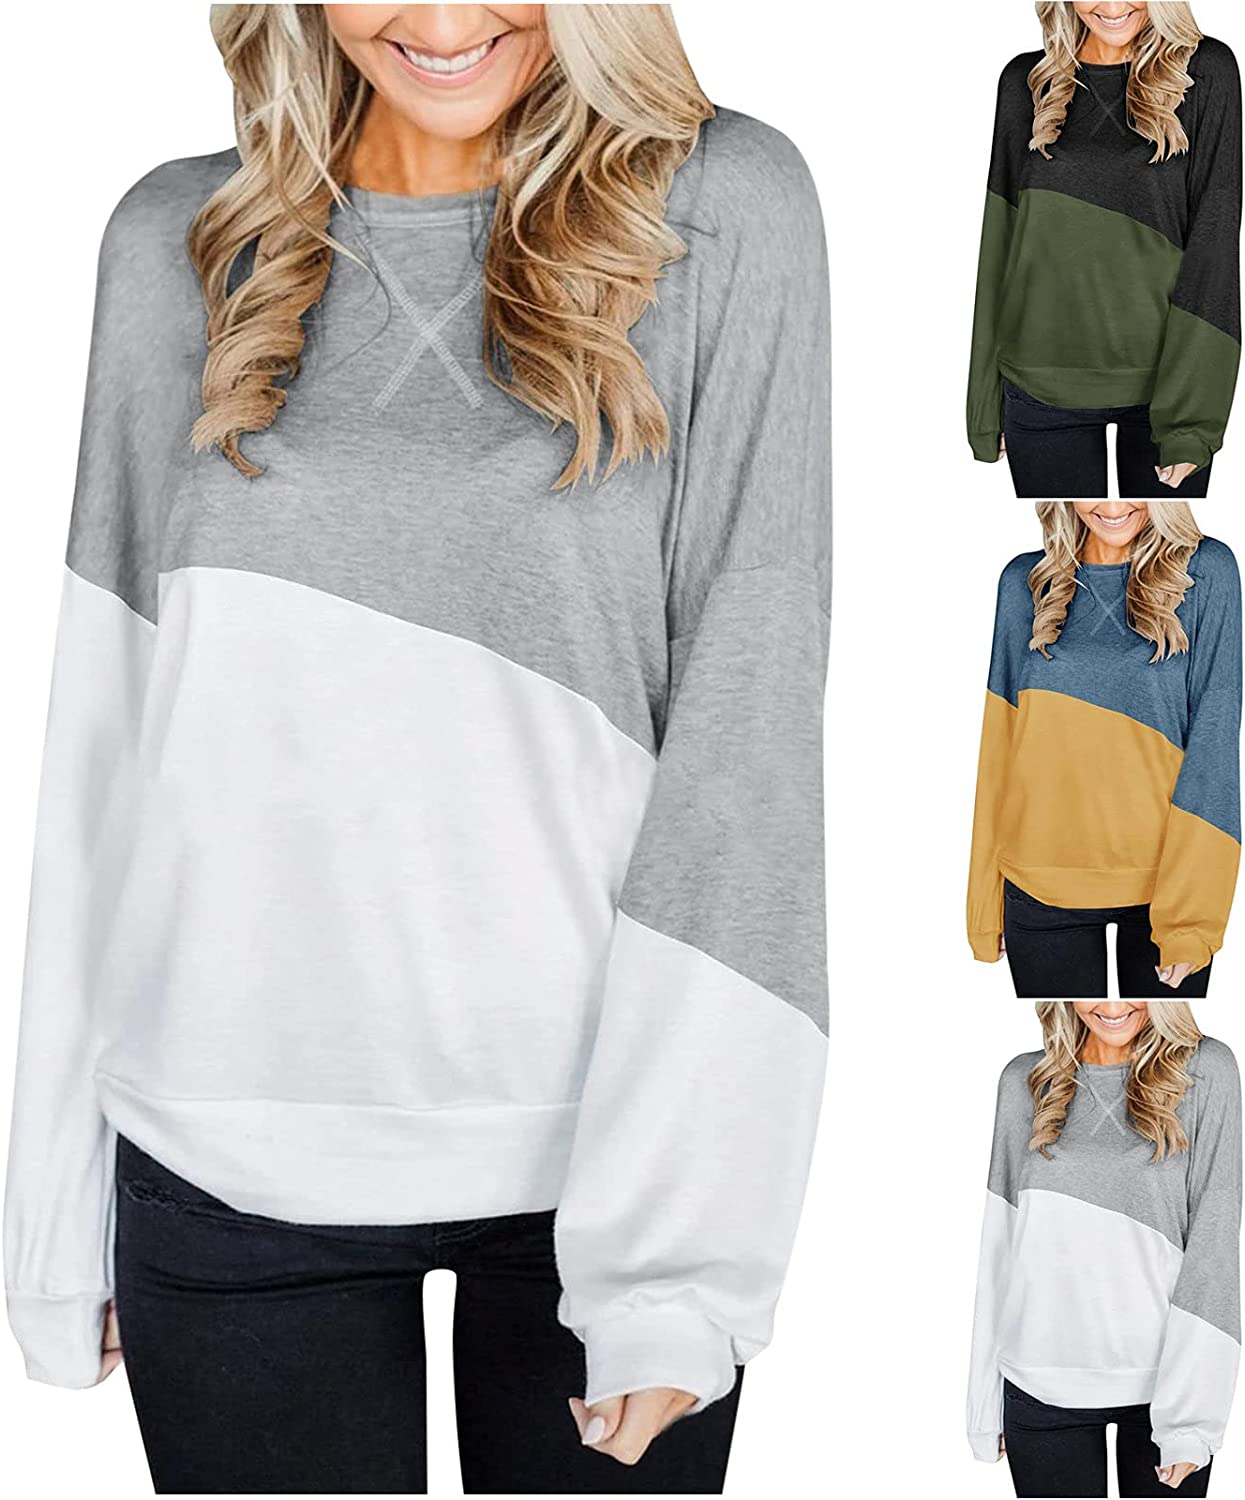 Womens Autumn Color Block Splicing Tunic Tops Lantern Long Sleeve Crew Neck T Shirts Casual Loose Comfy Blouse Tops